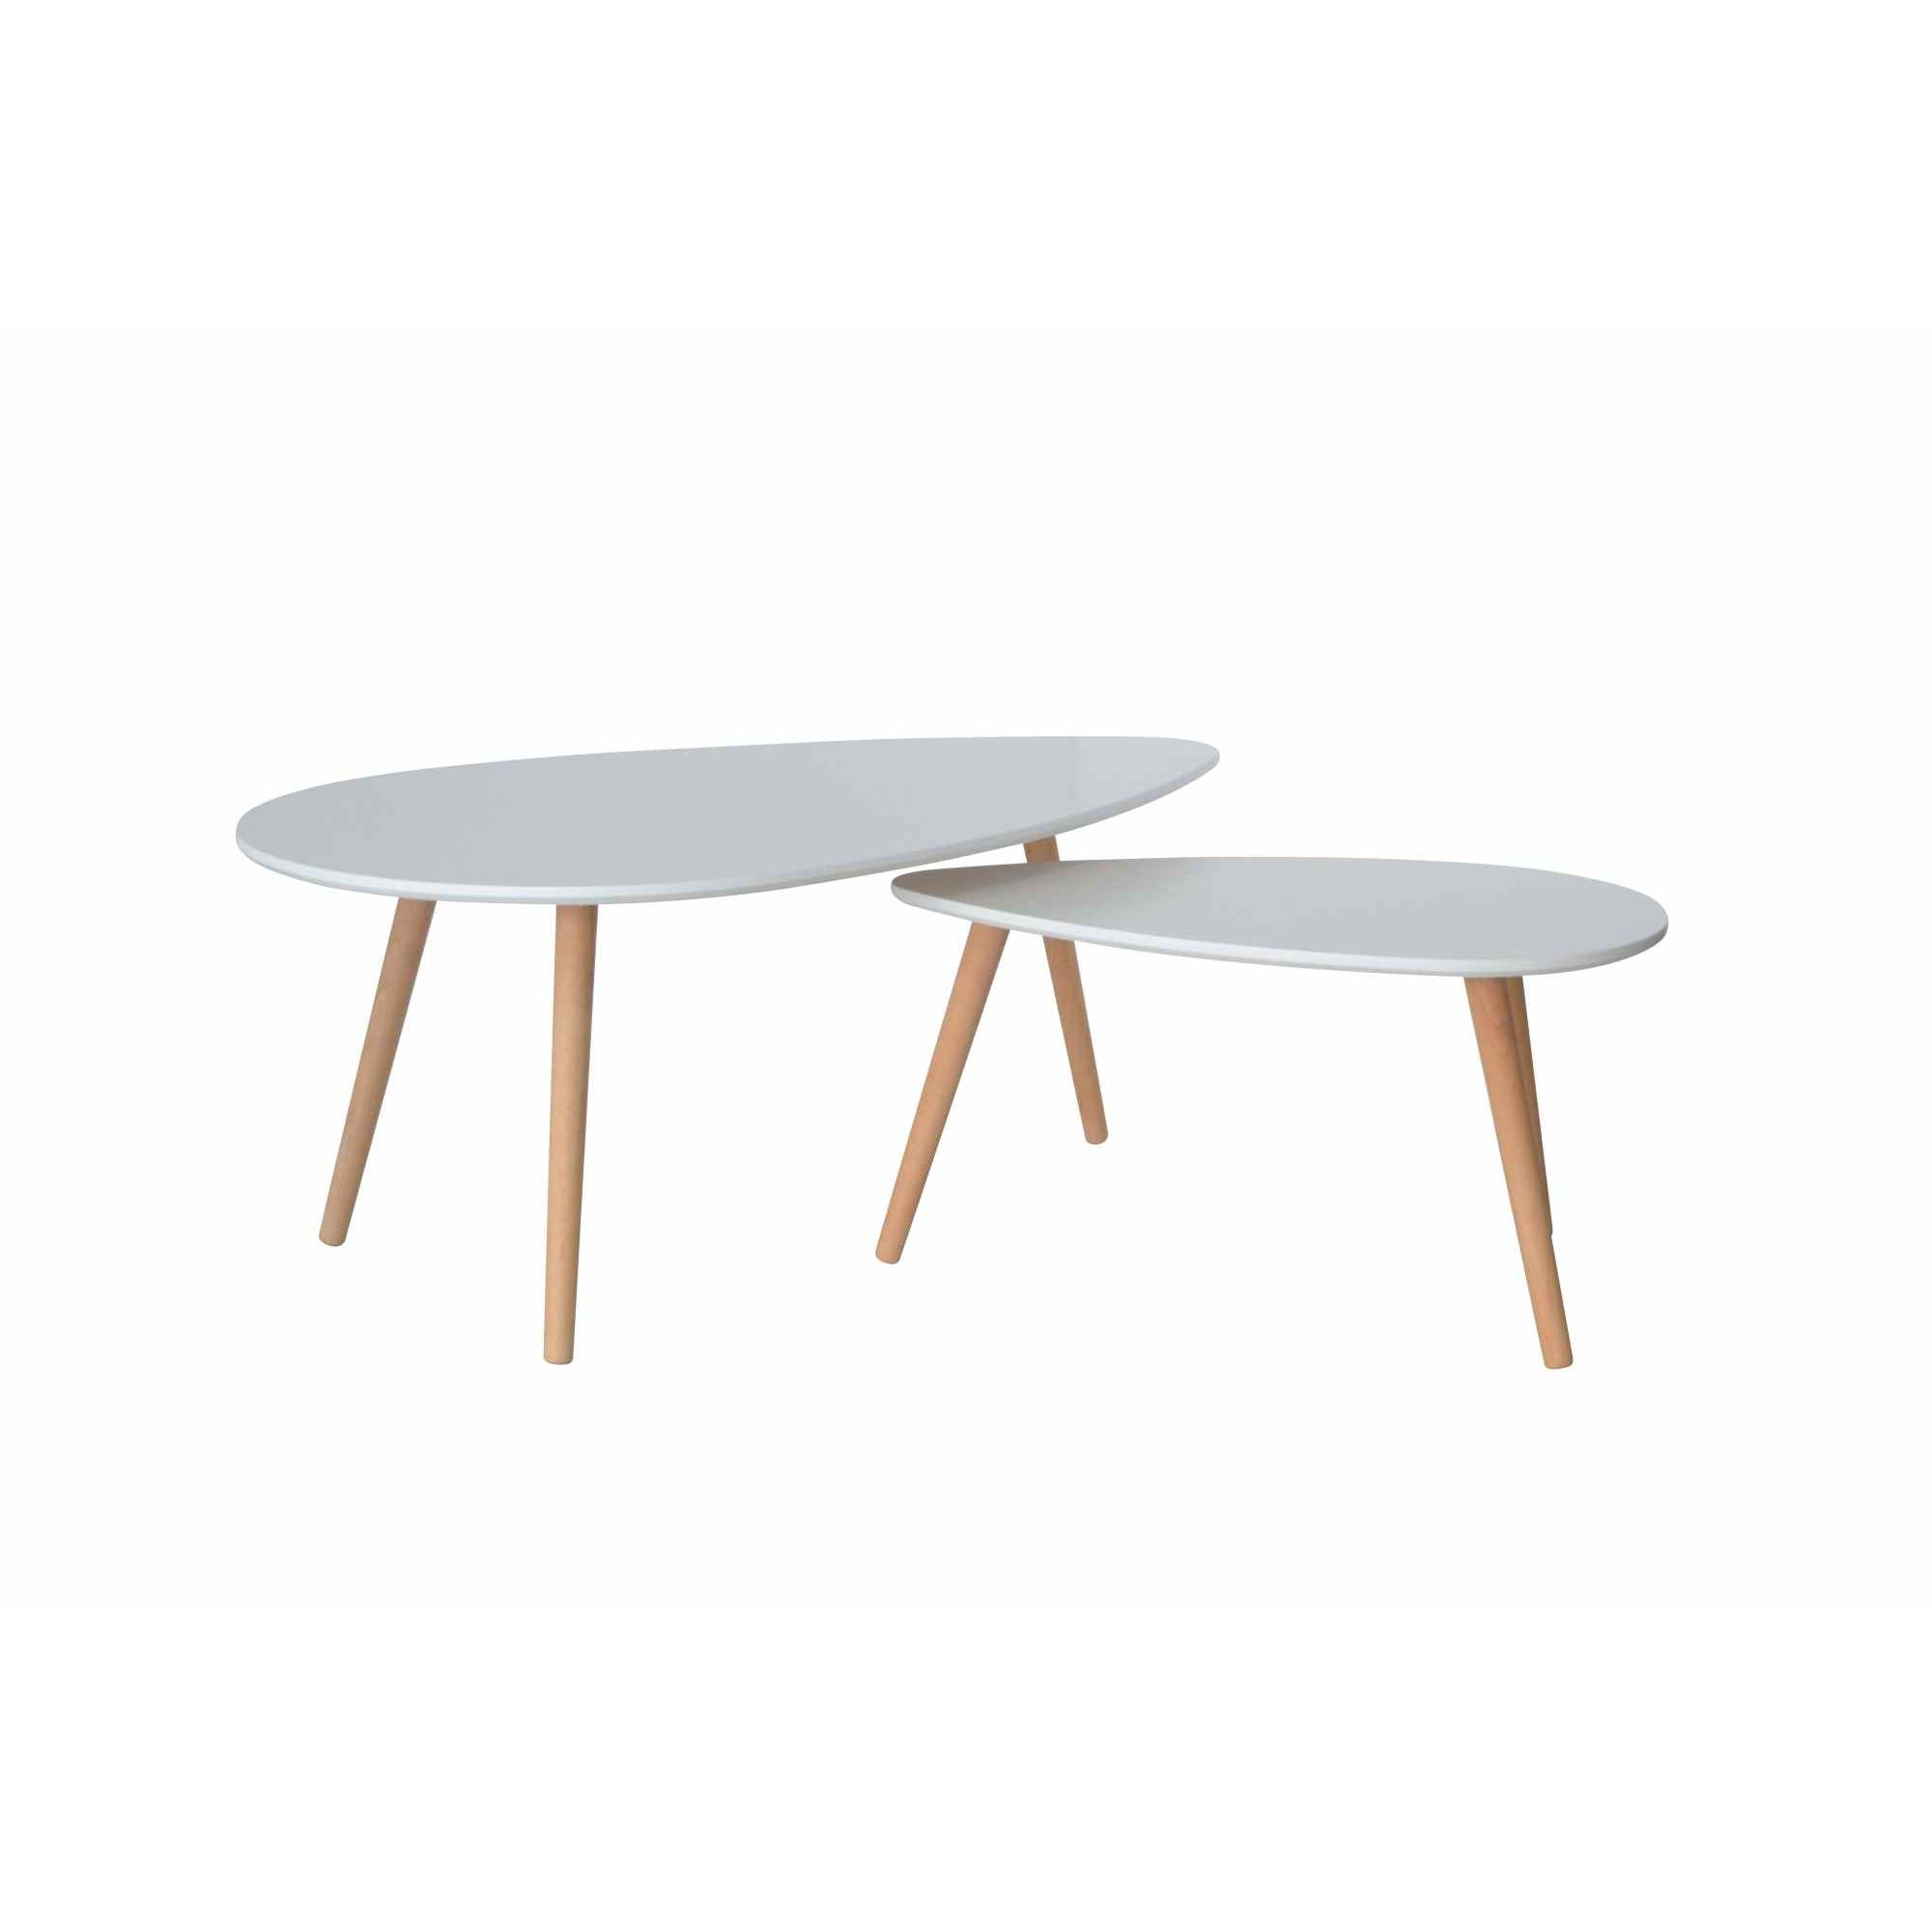 Deco in paris table basse scandinave blanc avesta avesta table base blanc - Table basse scandinave blanche ...